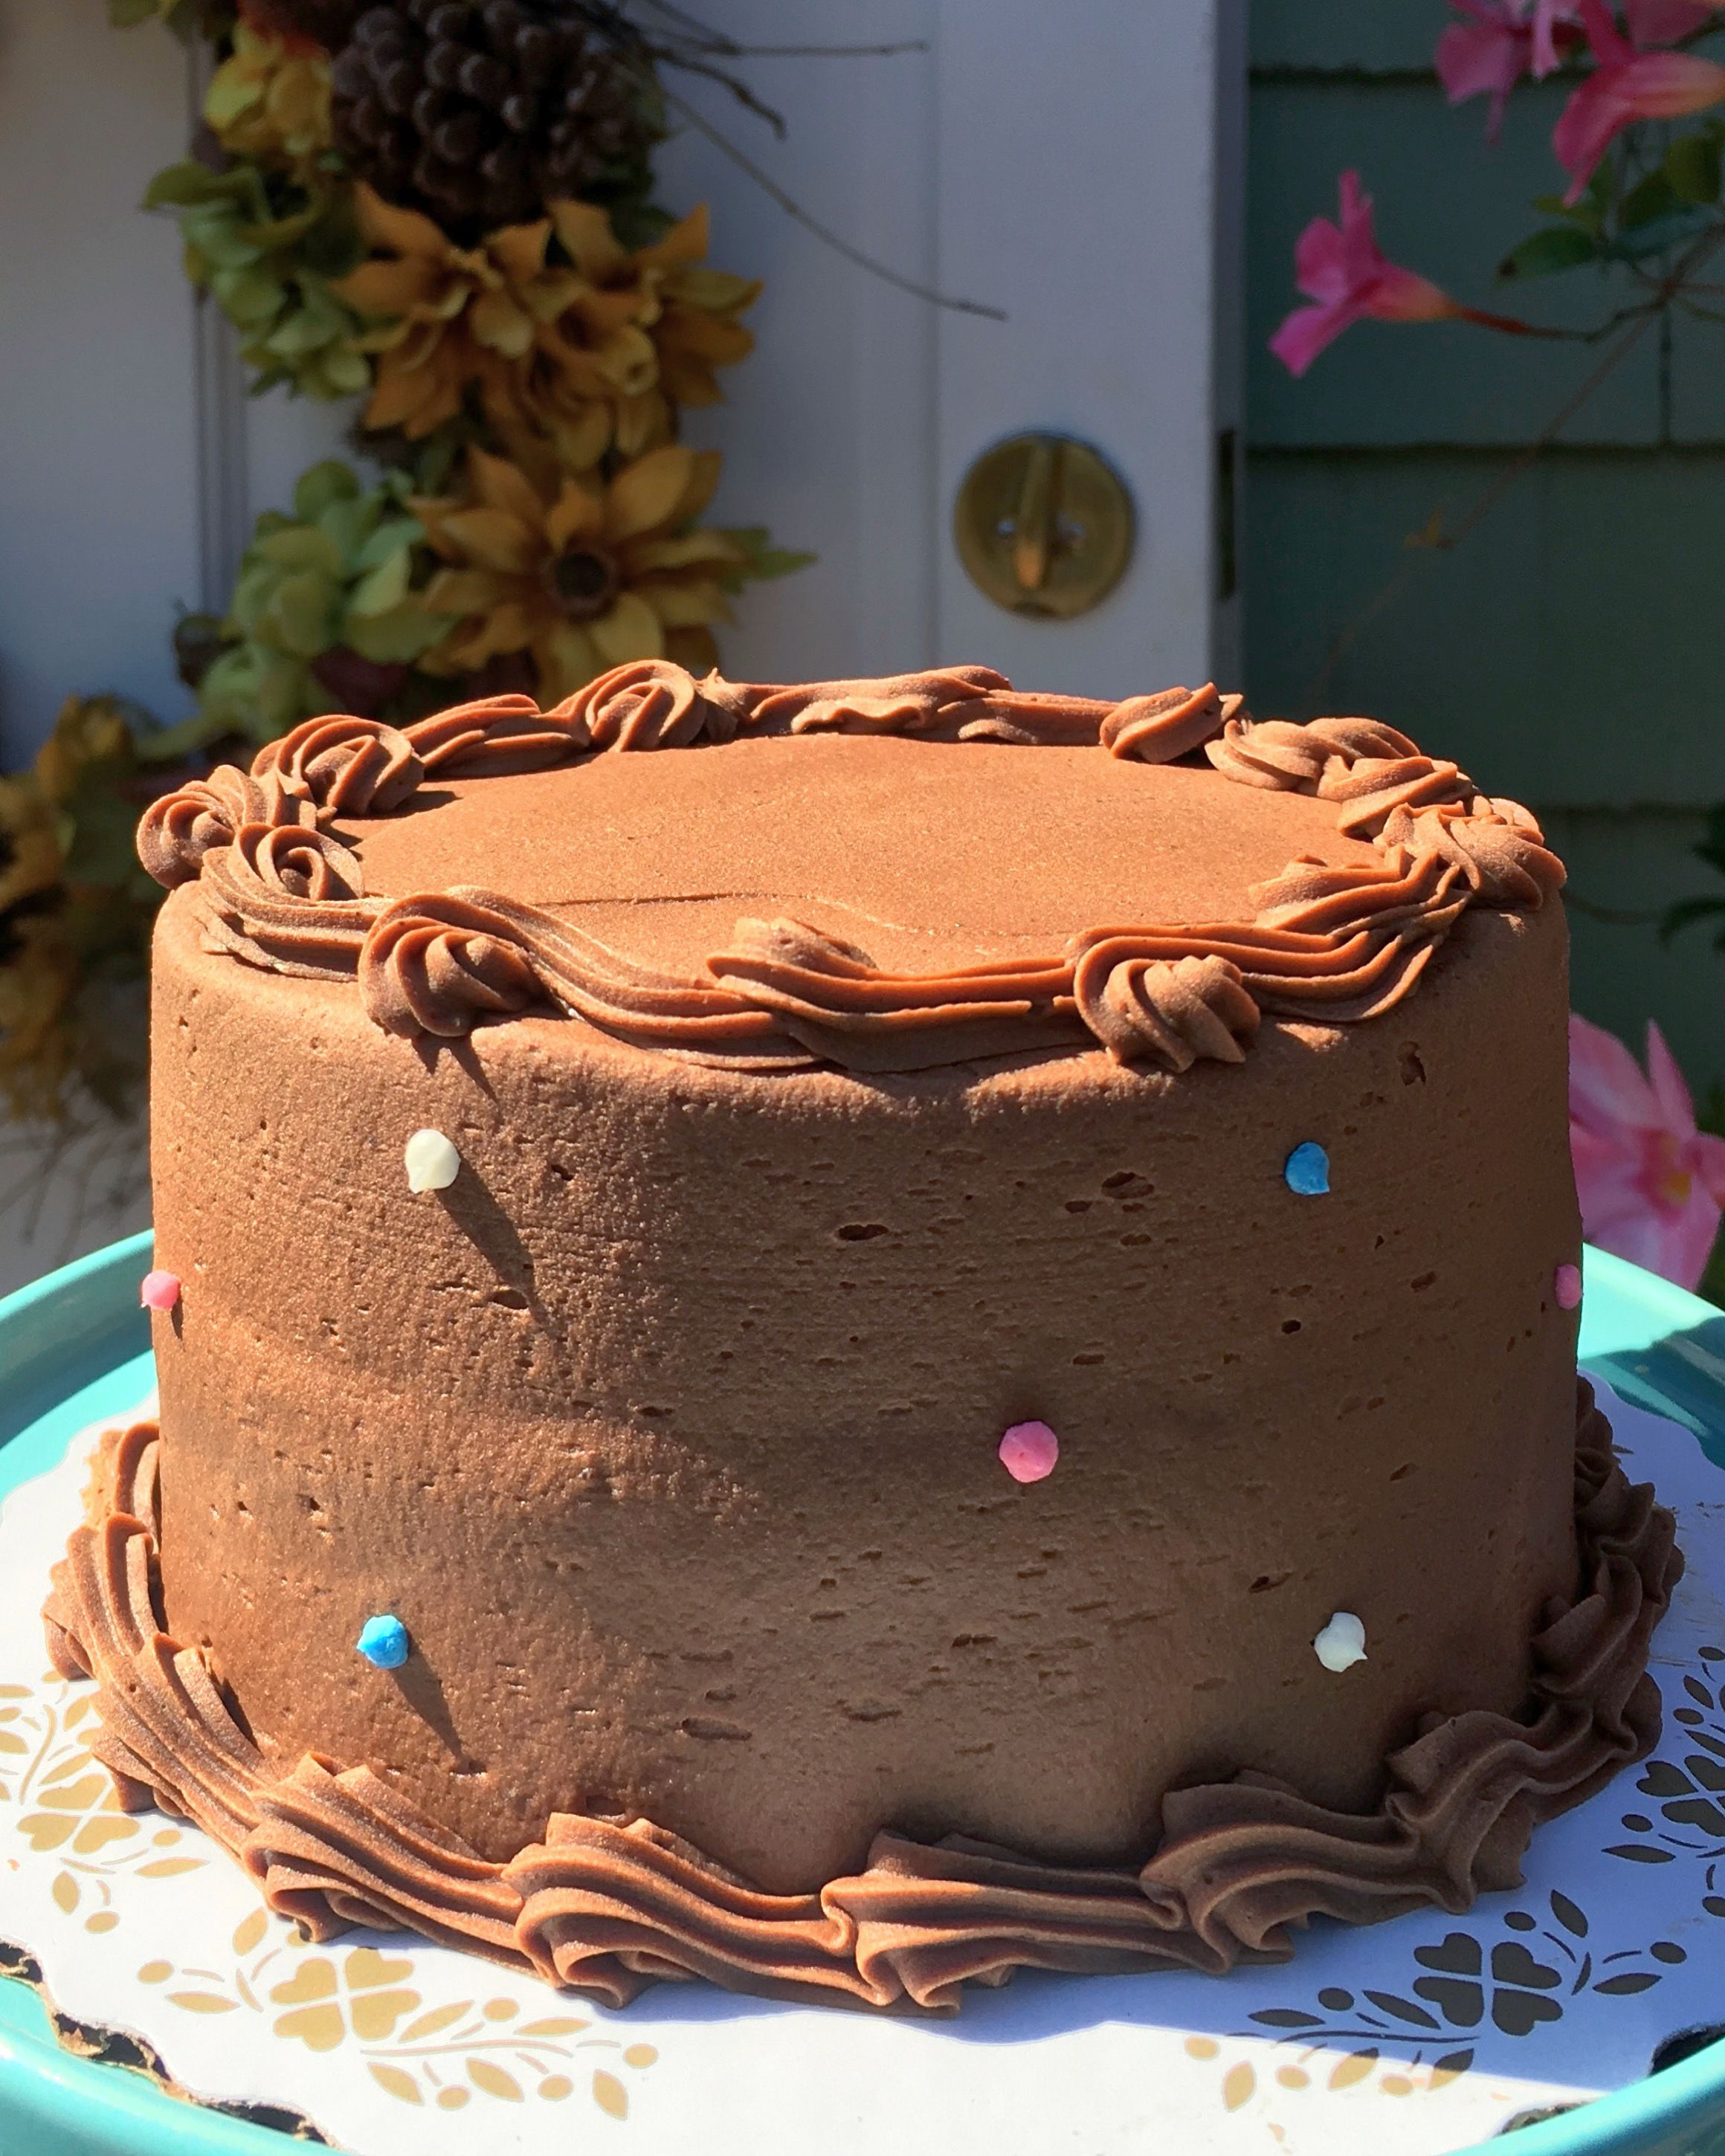 January 27 Is National Chocolate Cake Day National Chocolate Cake Day Chocolate Day Chocolate Cake